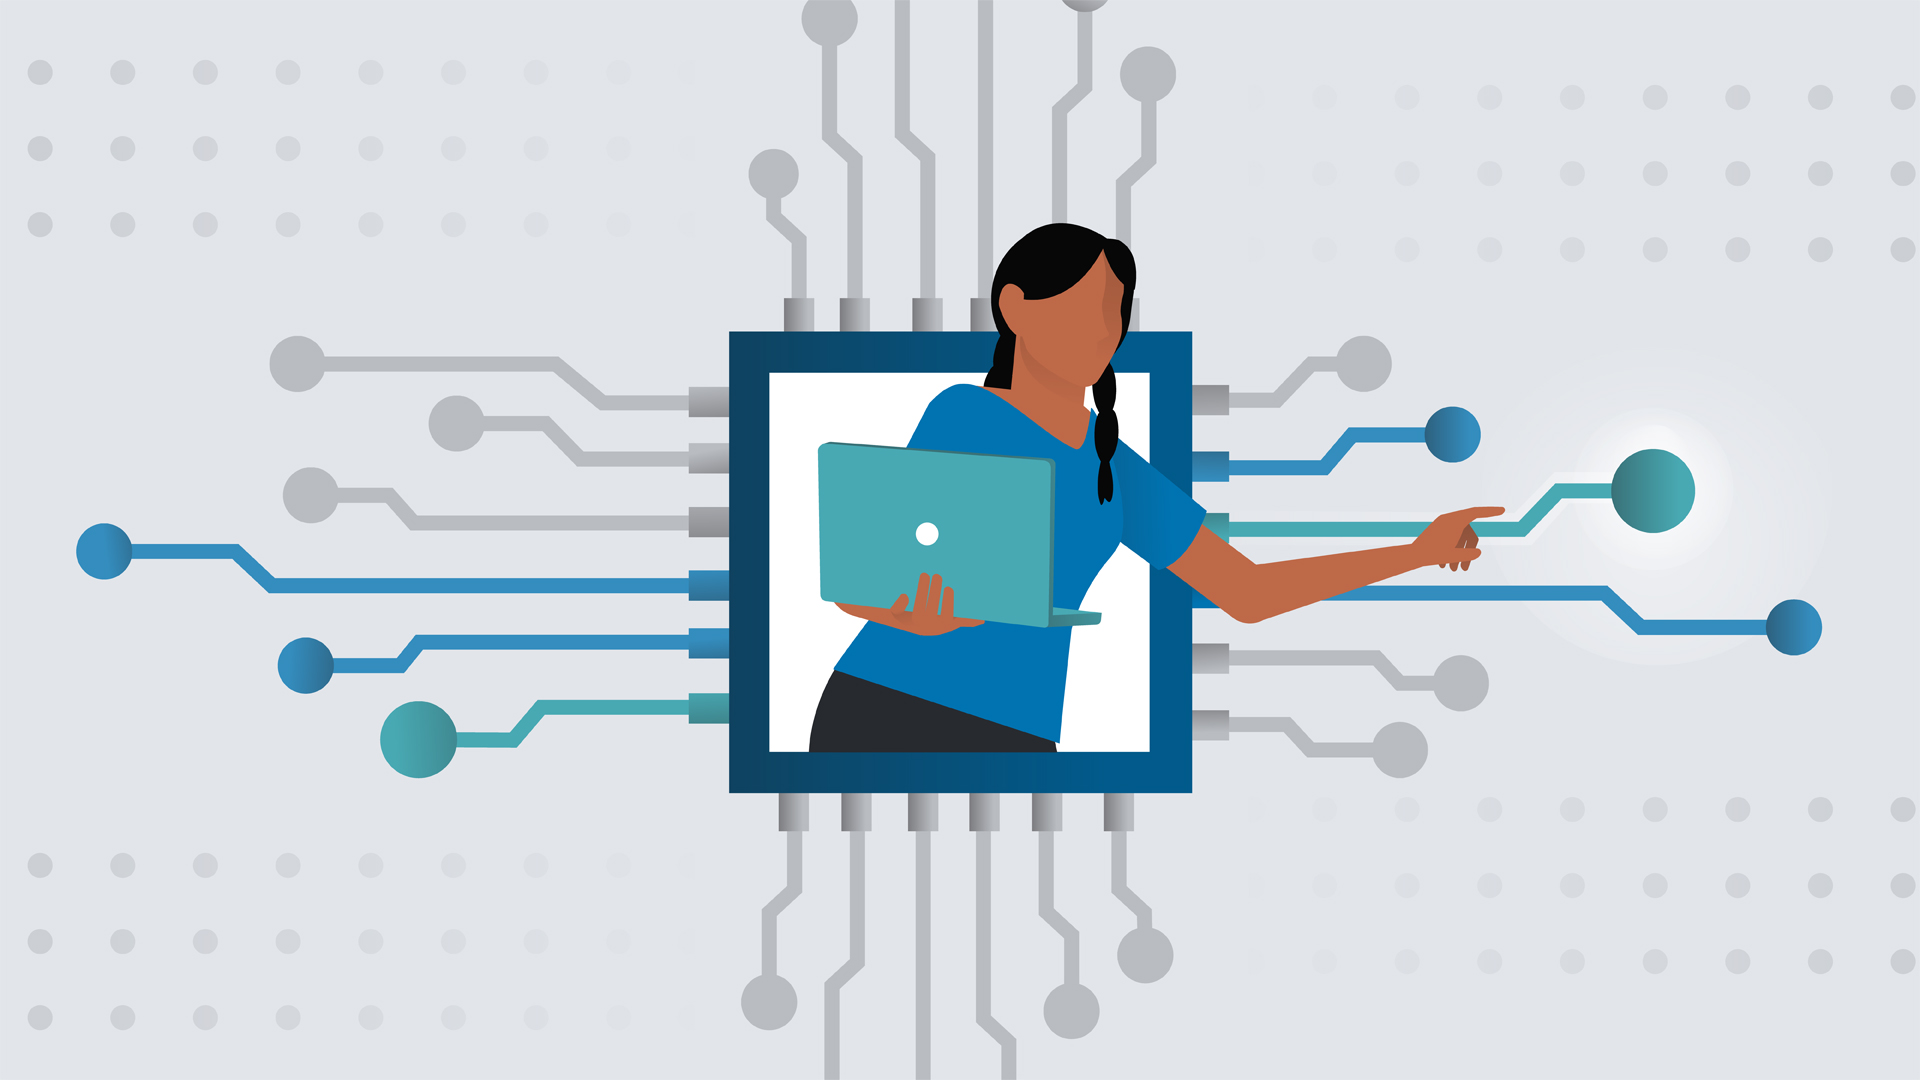 Welcome to this course: CompTIA A+ (220-1001): Cert Prep 2 Microprocessing and RAM